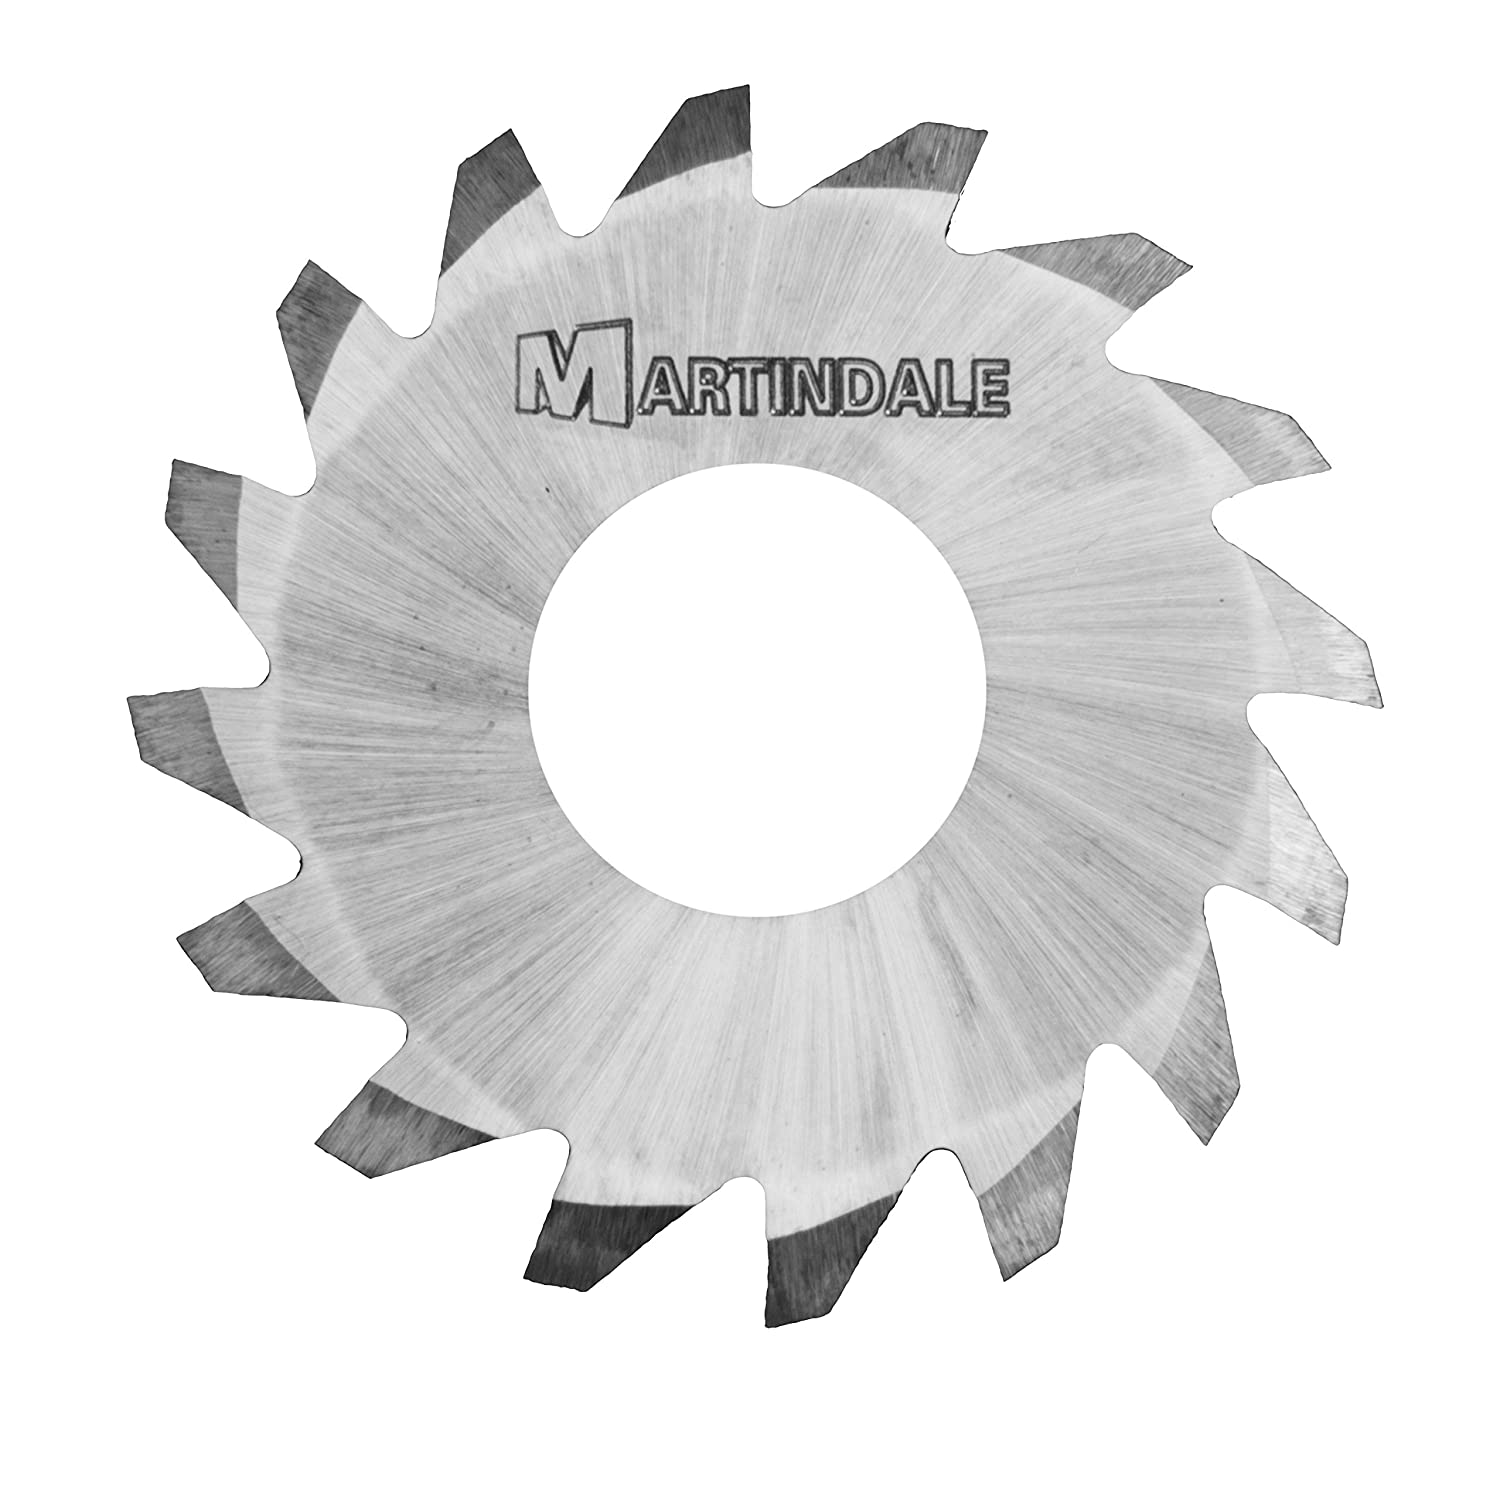 Martindale TUNSV9605250 Tungsten-Carbide Tungsten-Carbide V-Cutters 20 Teeth 0.052 Thick 3//8 Hole Diameter 1-1//8 Outer Diameter